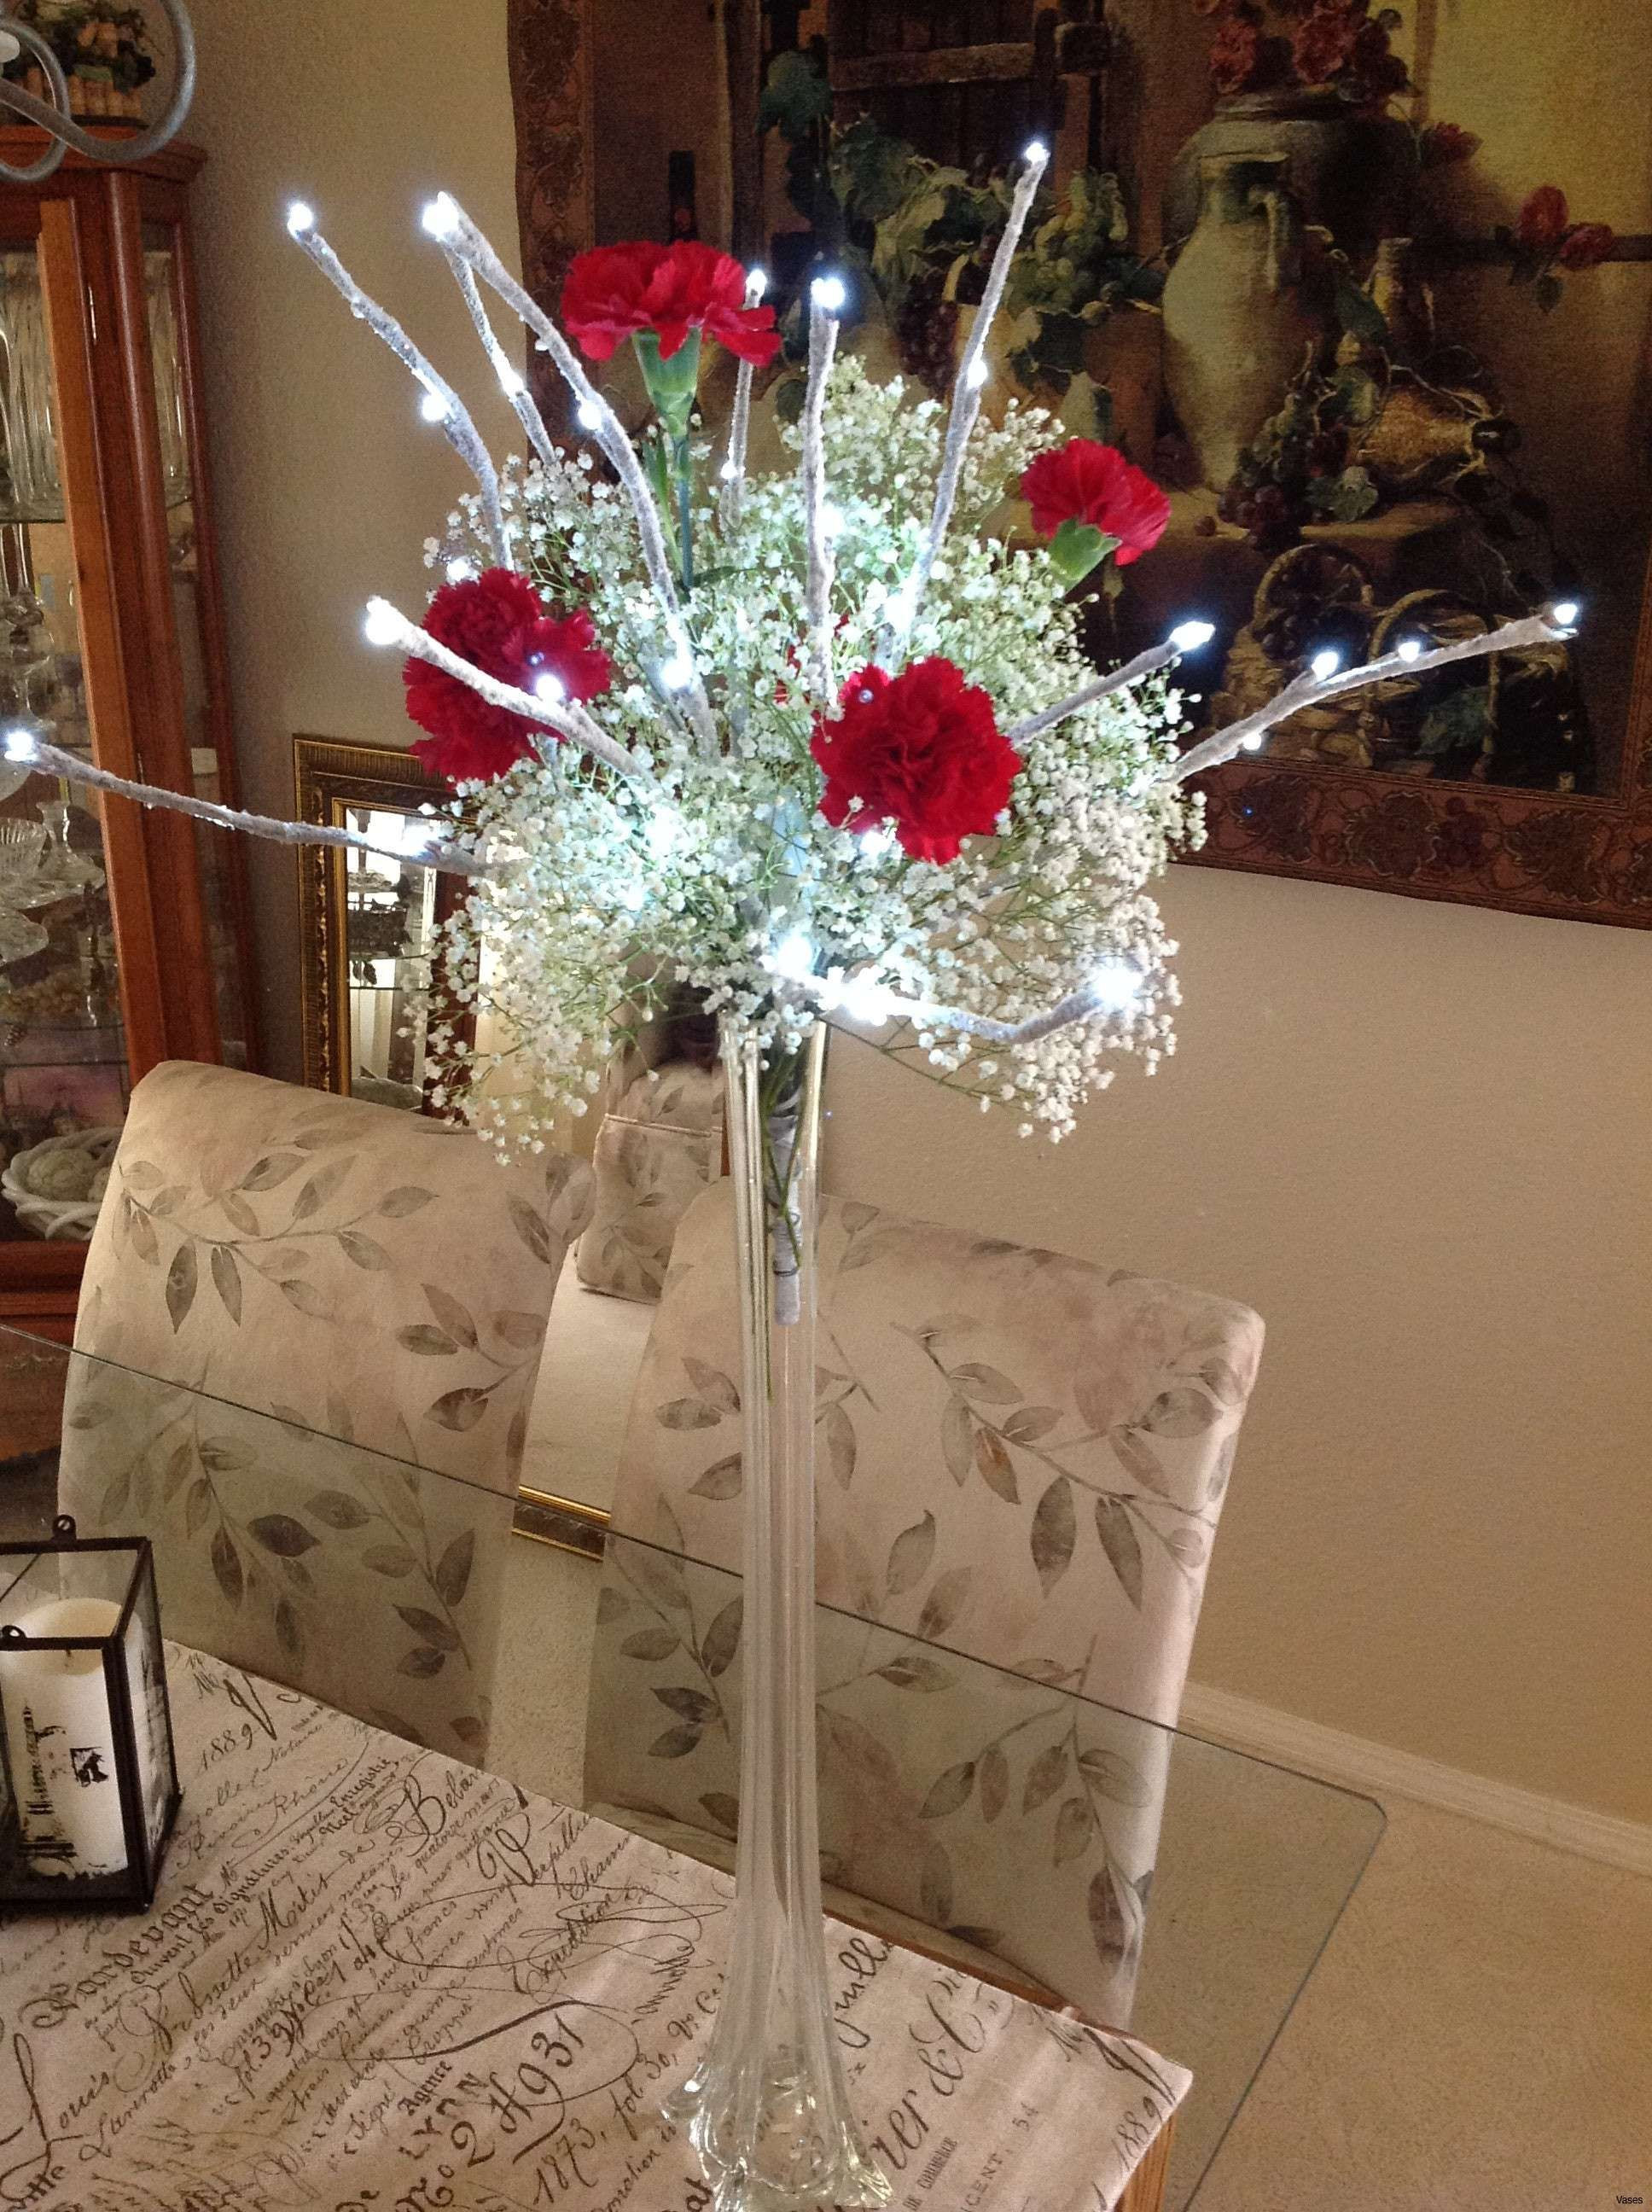 20 Inch Tall Glass Vases Of 23 Tall Cylinder Vases the Weekly World within Vase Lighting Vase Lighting Prettylashes